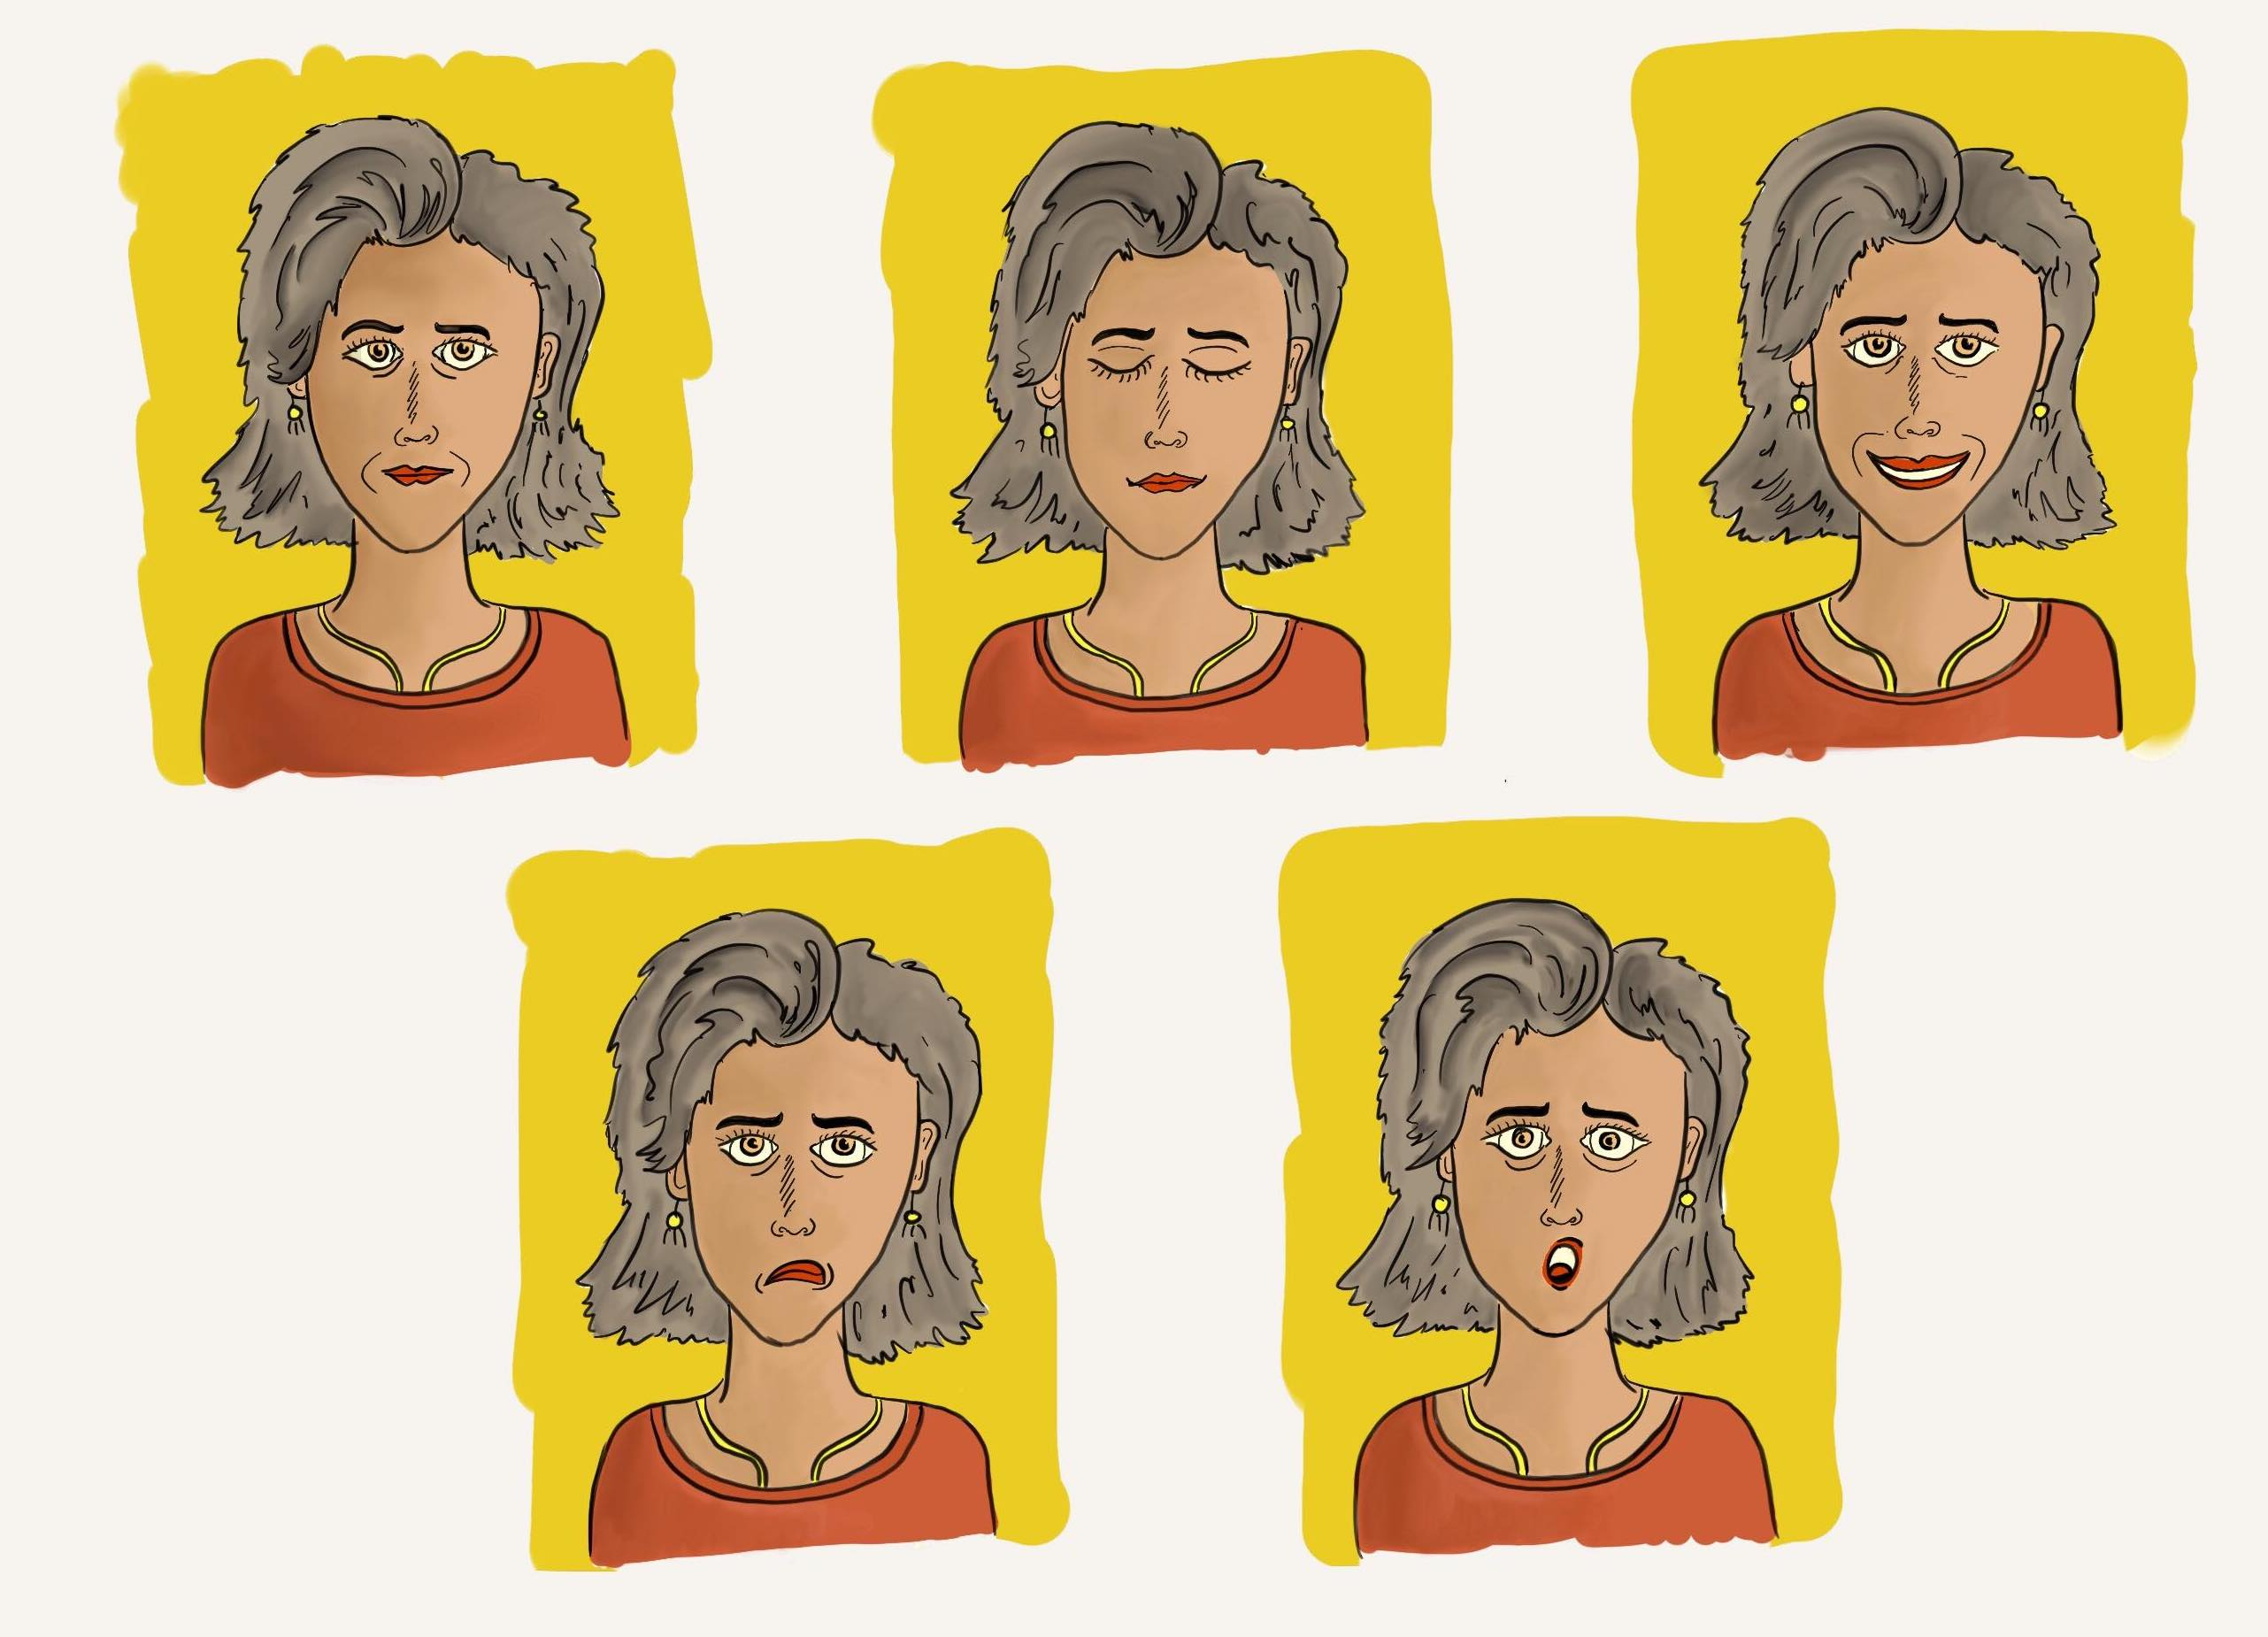 Record your expressions and get started